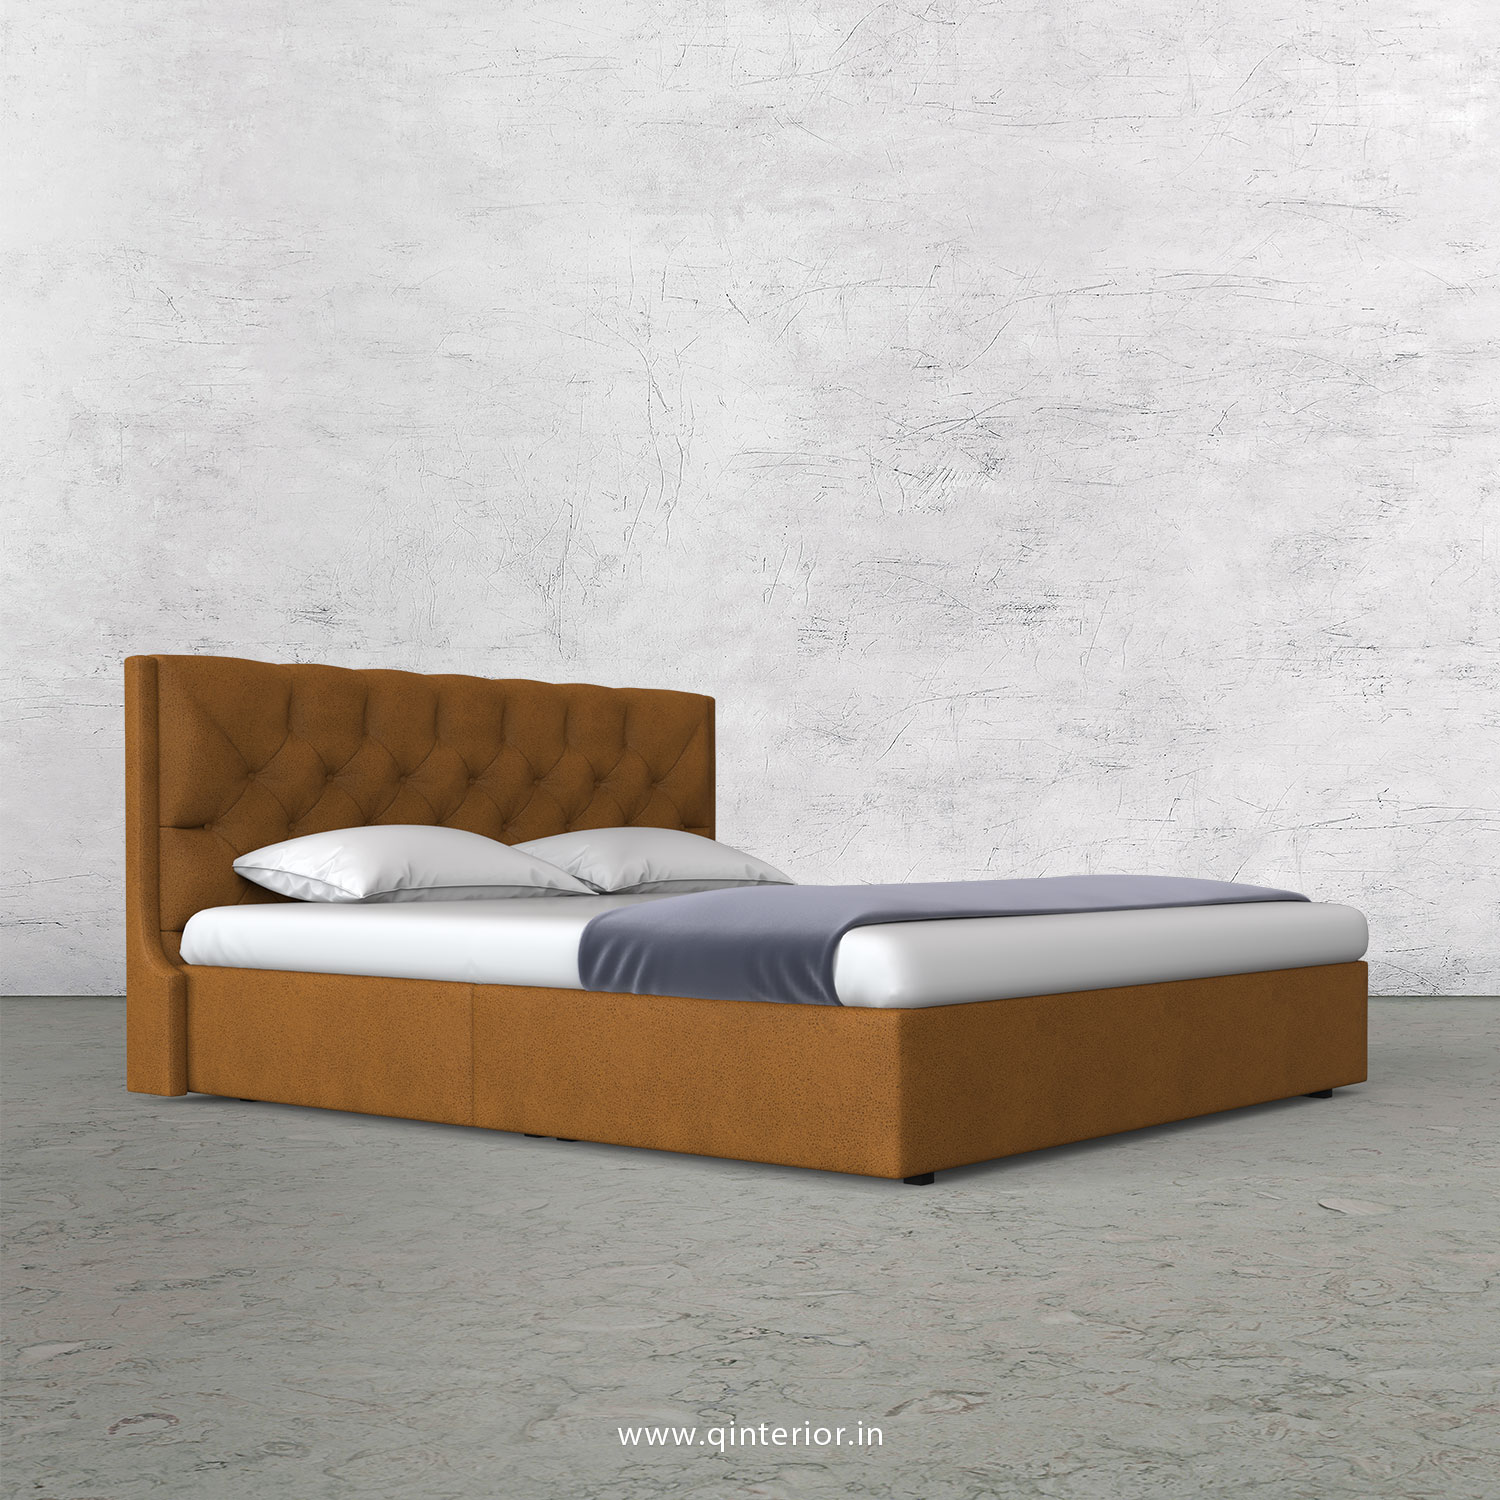 Scorpius King Size Bed in Fab Leather Fabric - KBD009 FL14